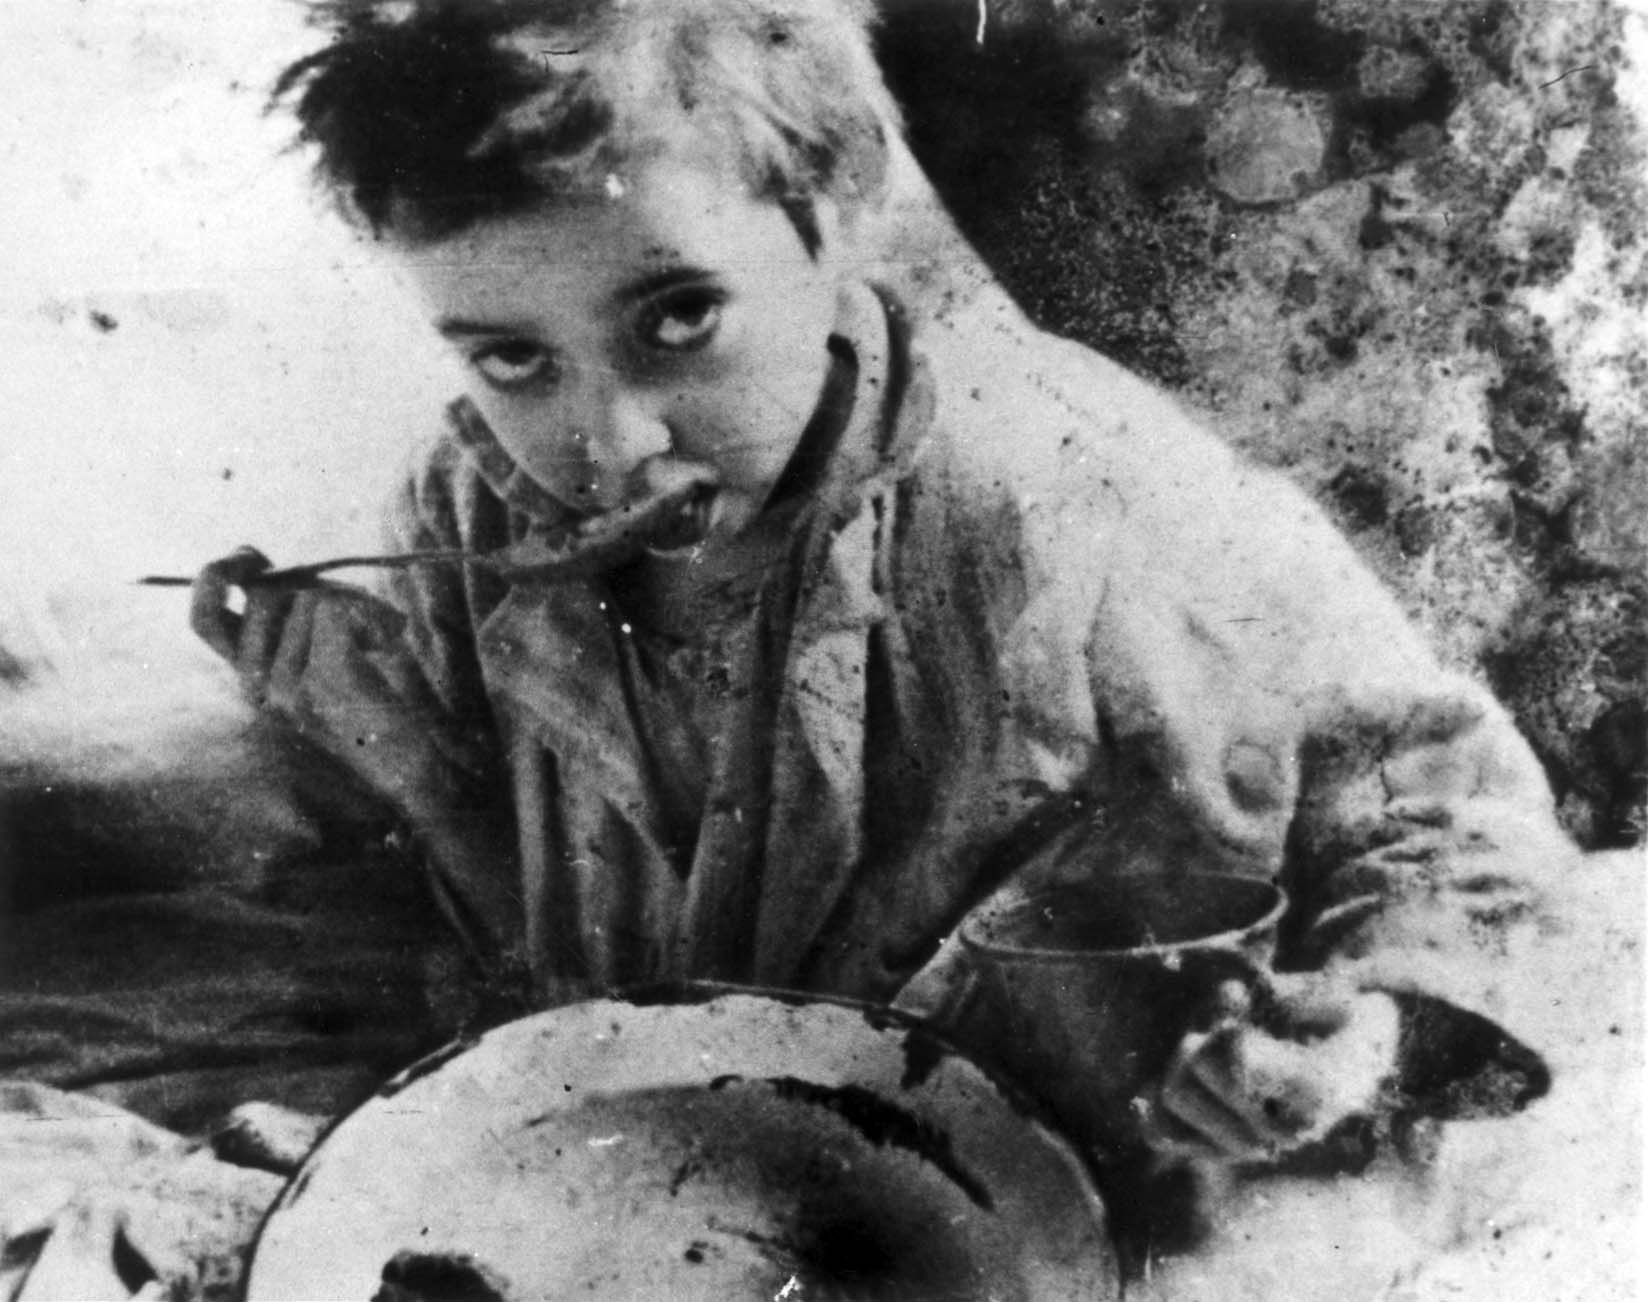 Child eating soup in the Lodz Ghetto